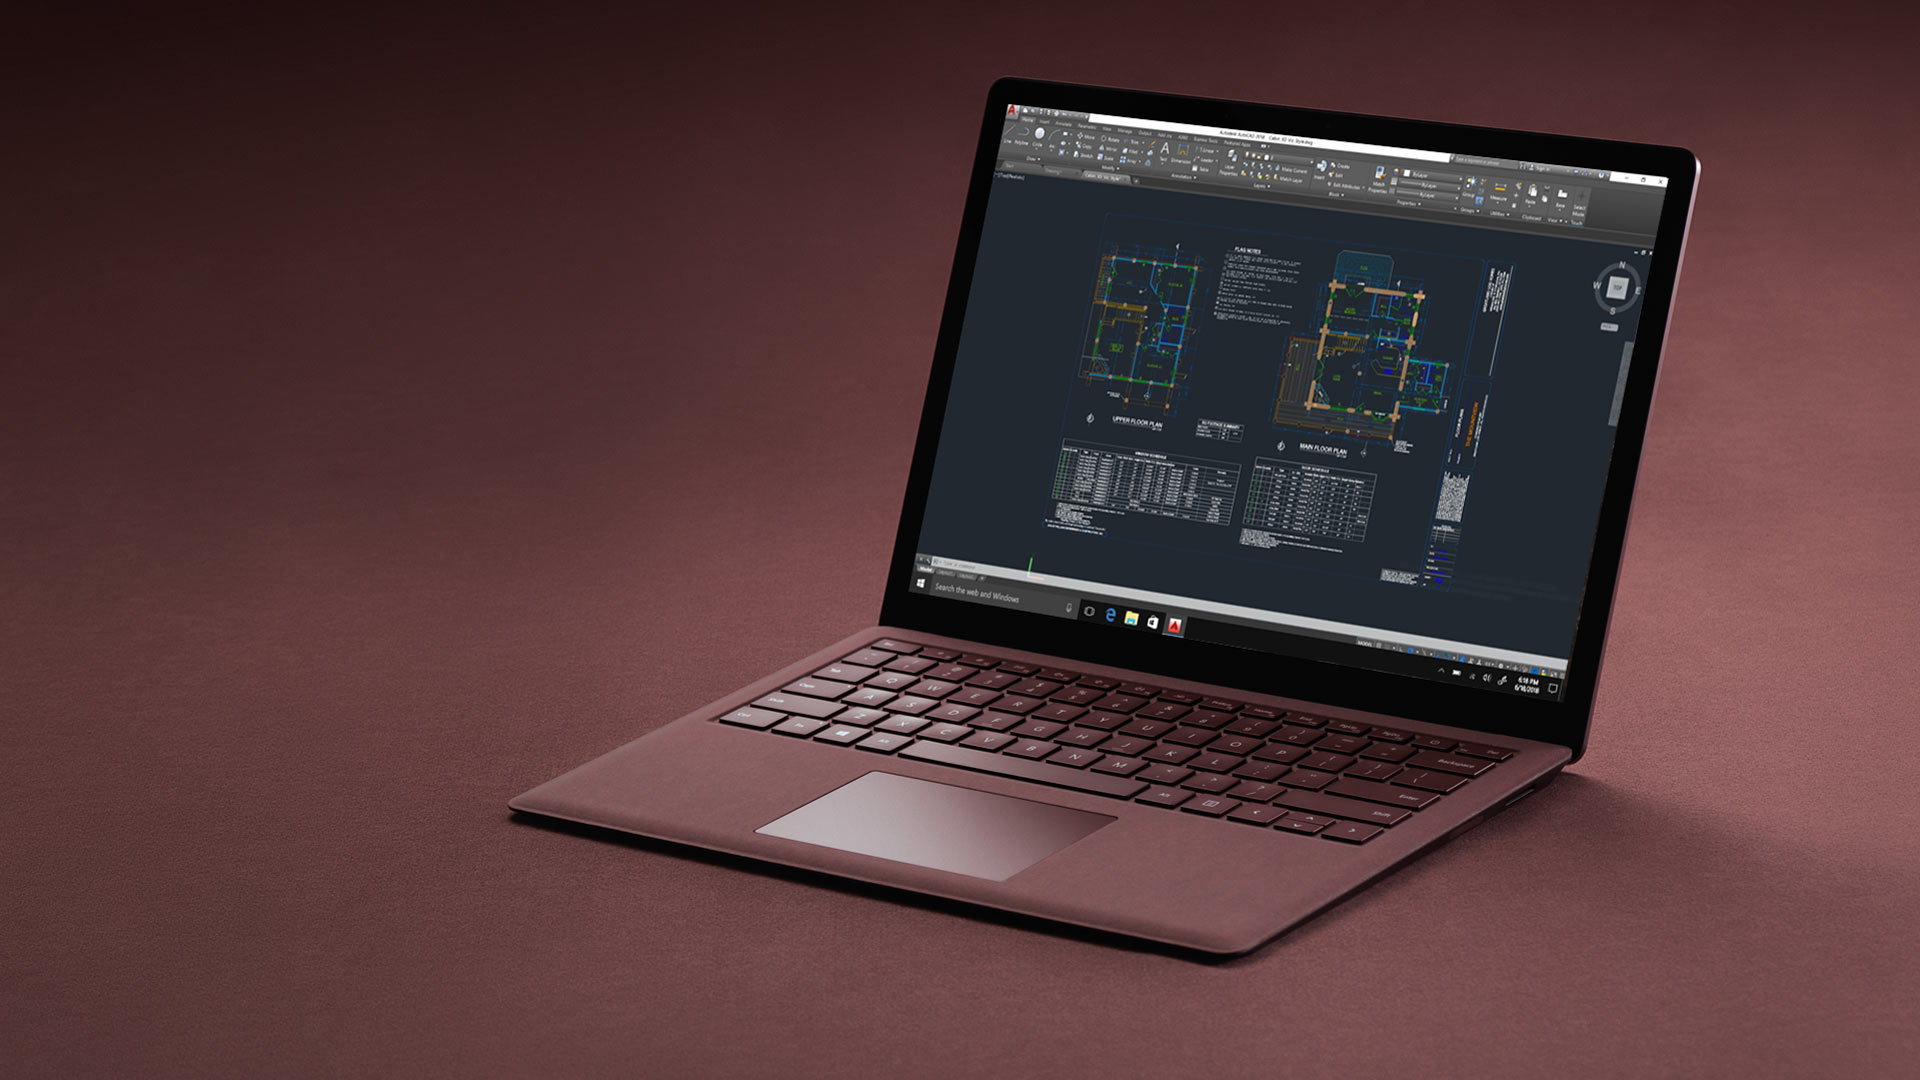 Burgundy Surface Laptop with AutoCAD screen.